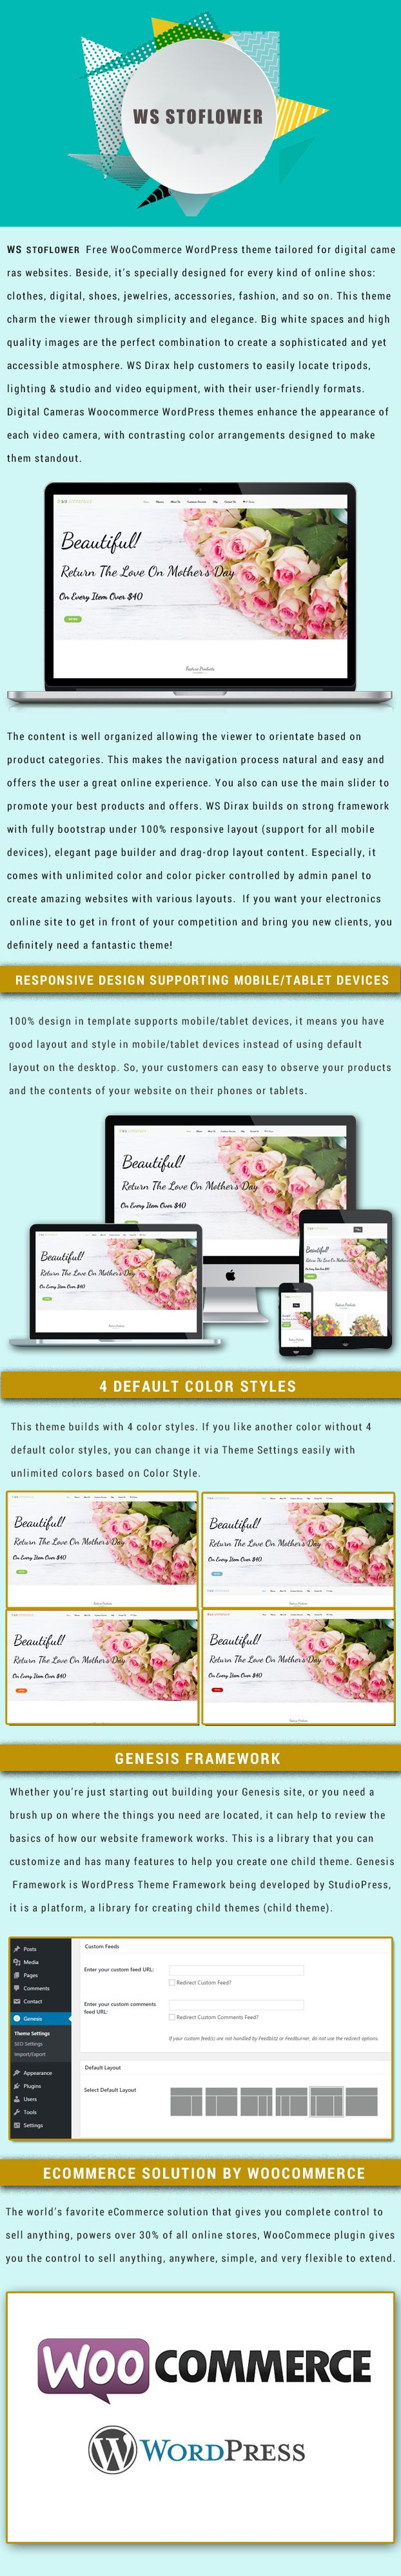 WS Soflower - Flower Woocommerce Wordpress Themes Screenshot 1